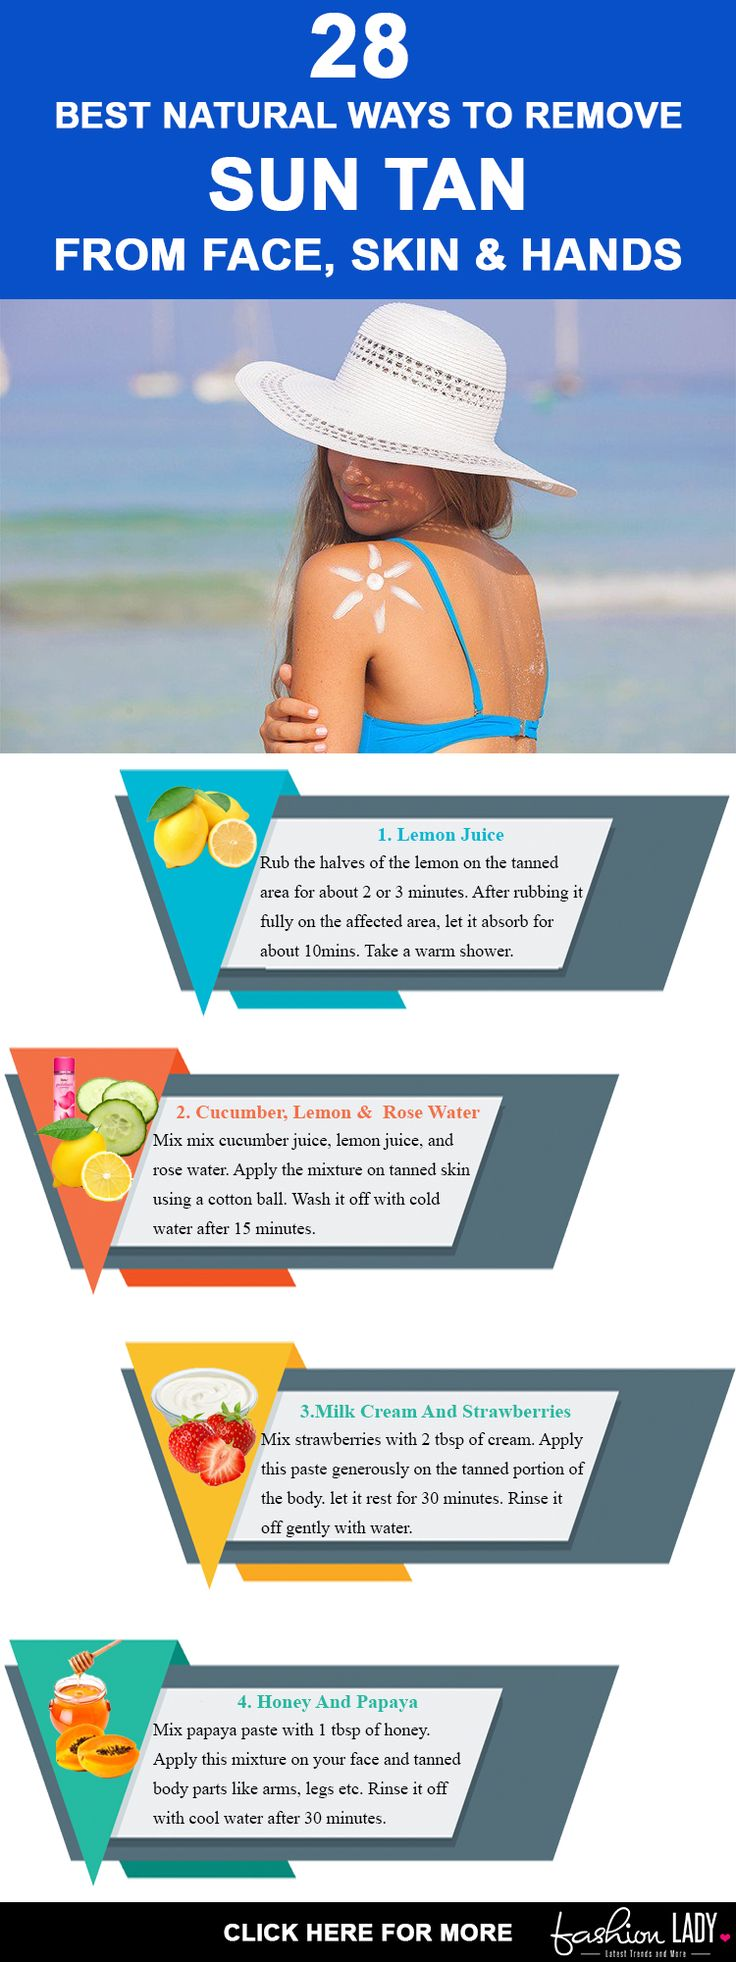 28 Best Natural Ways To Remove Sun Tan From Face, Skin & Hands